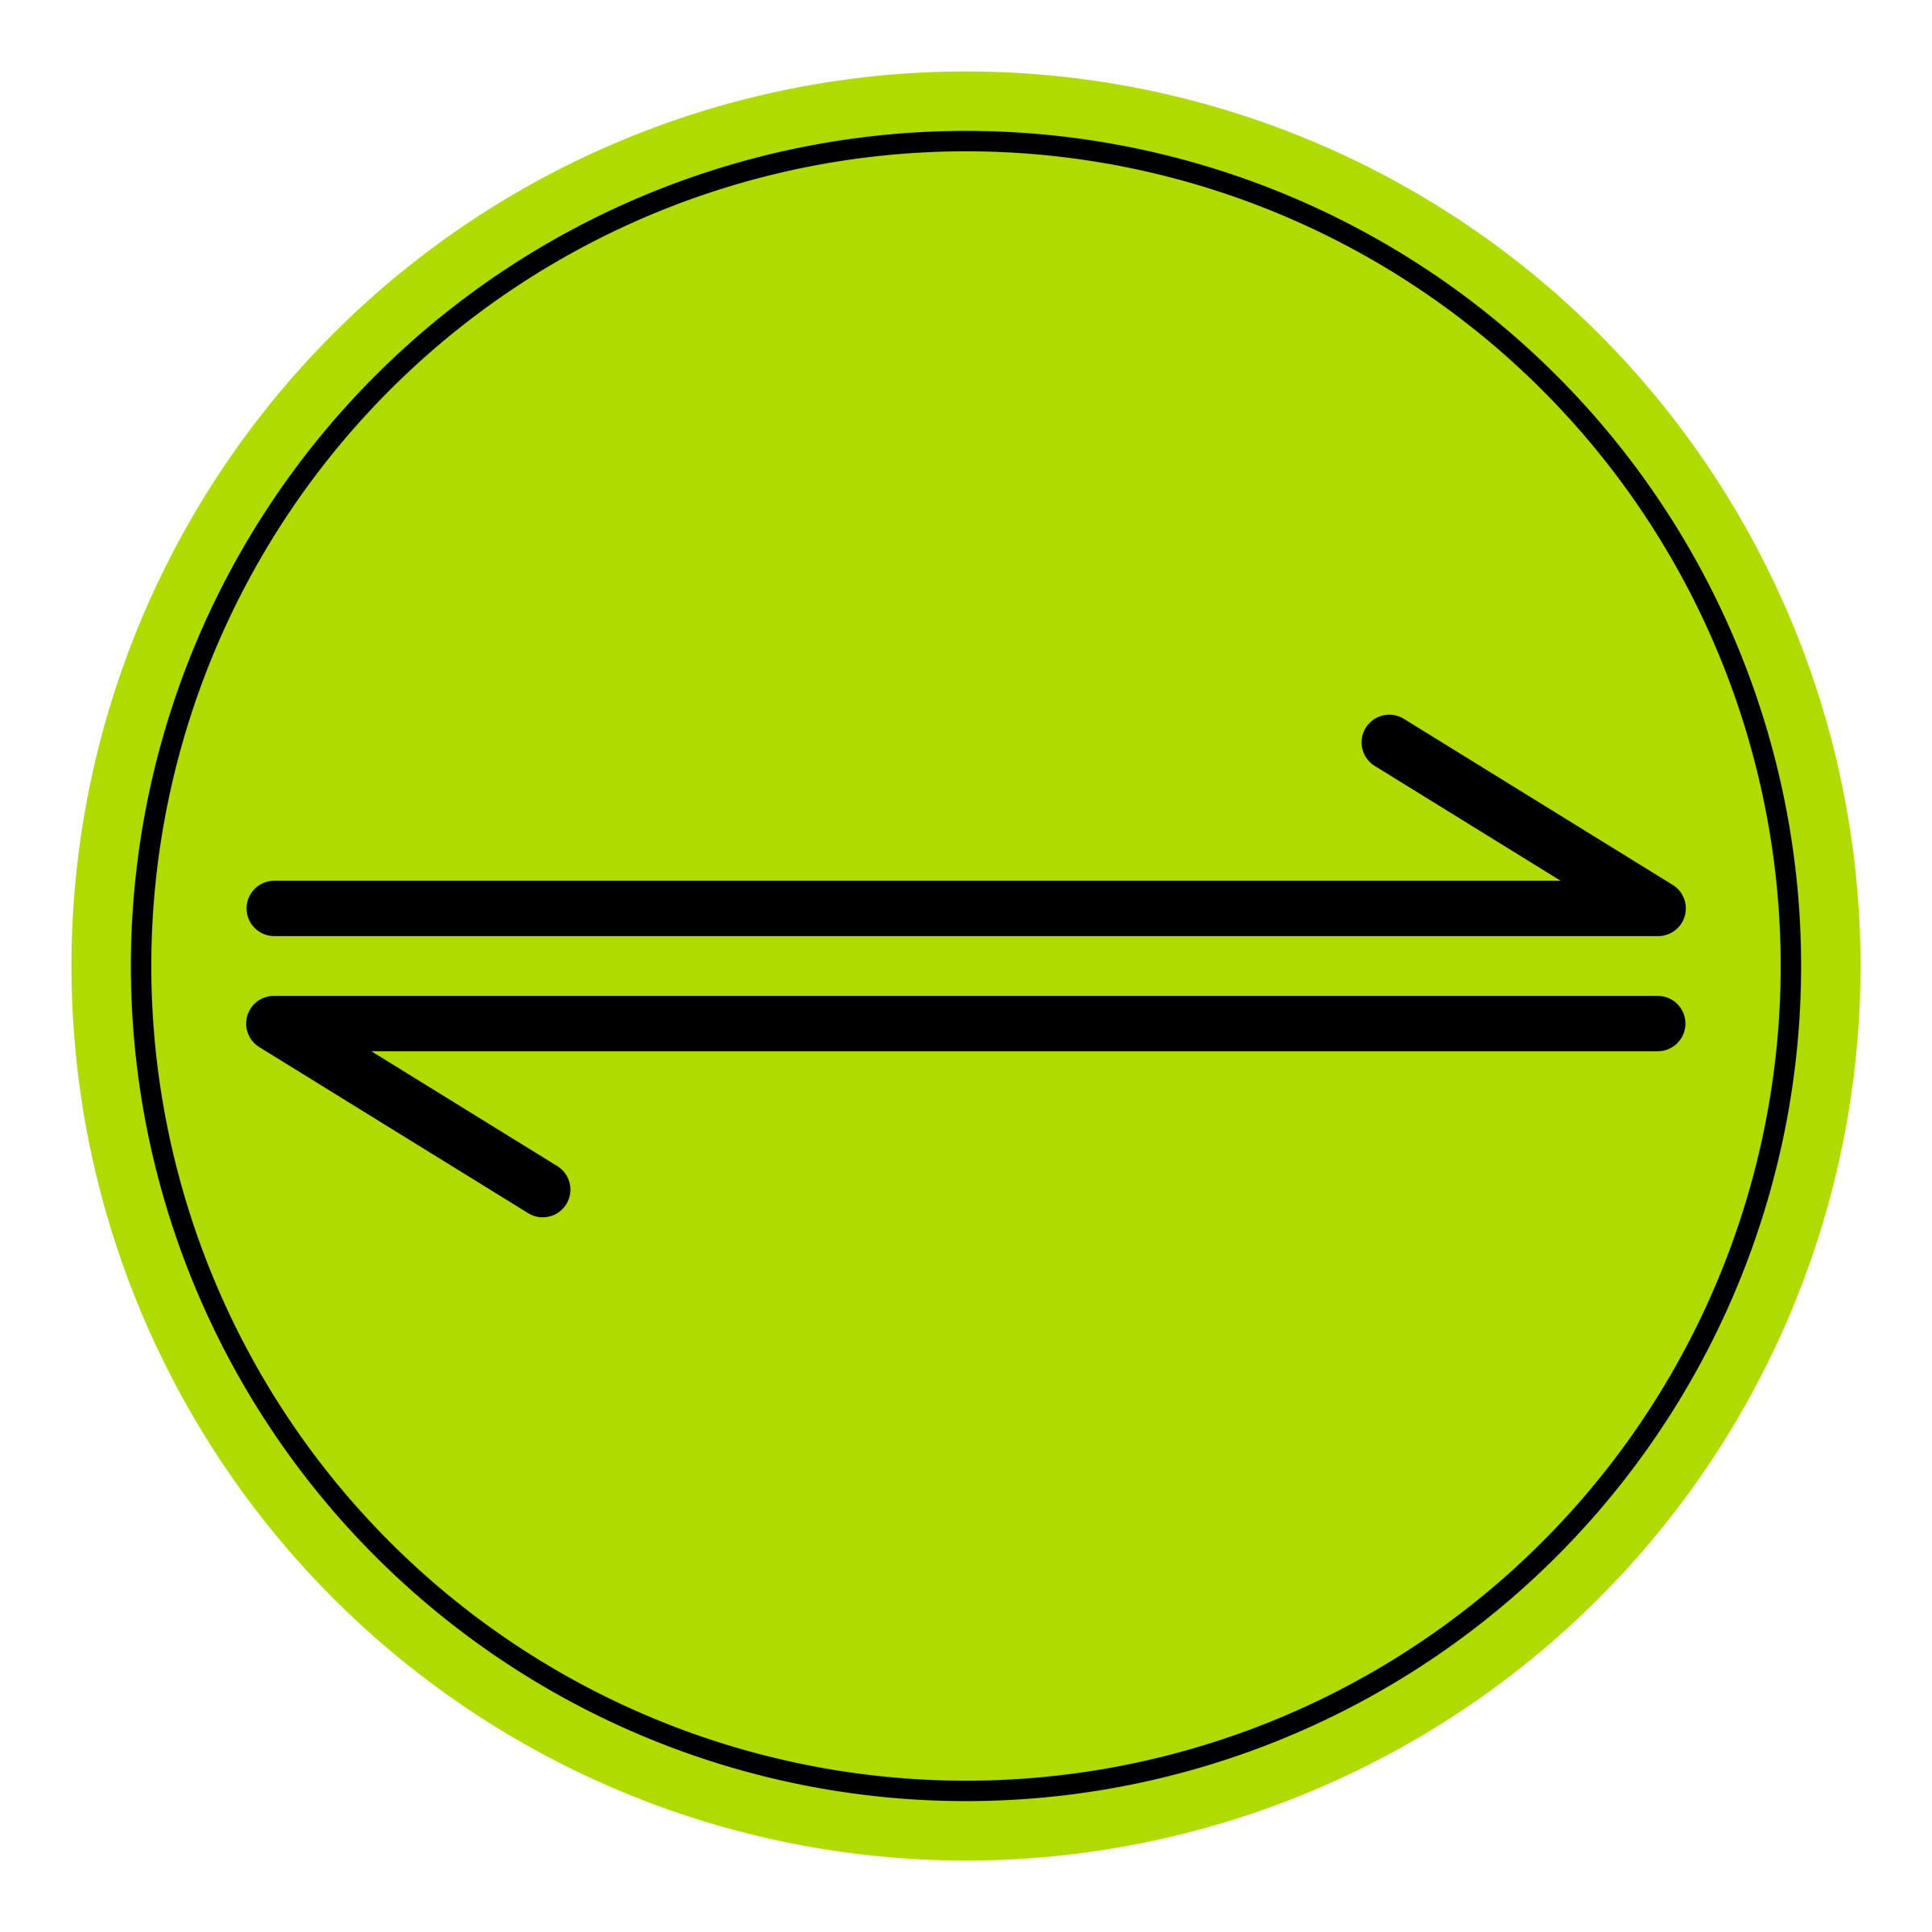 Chemistry clip symbol. Equilibrium icons png free